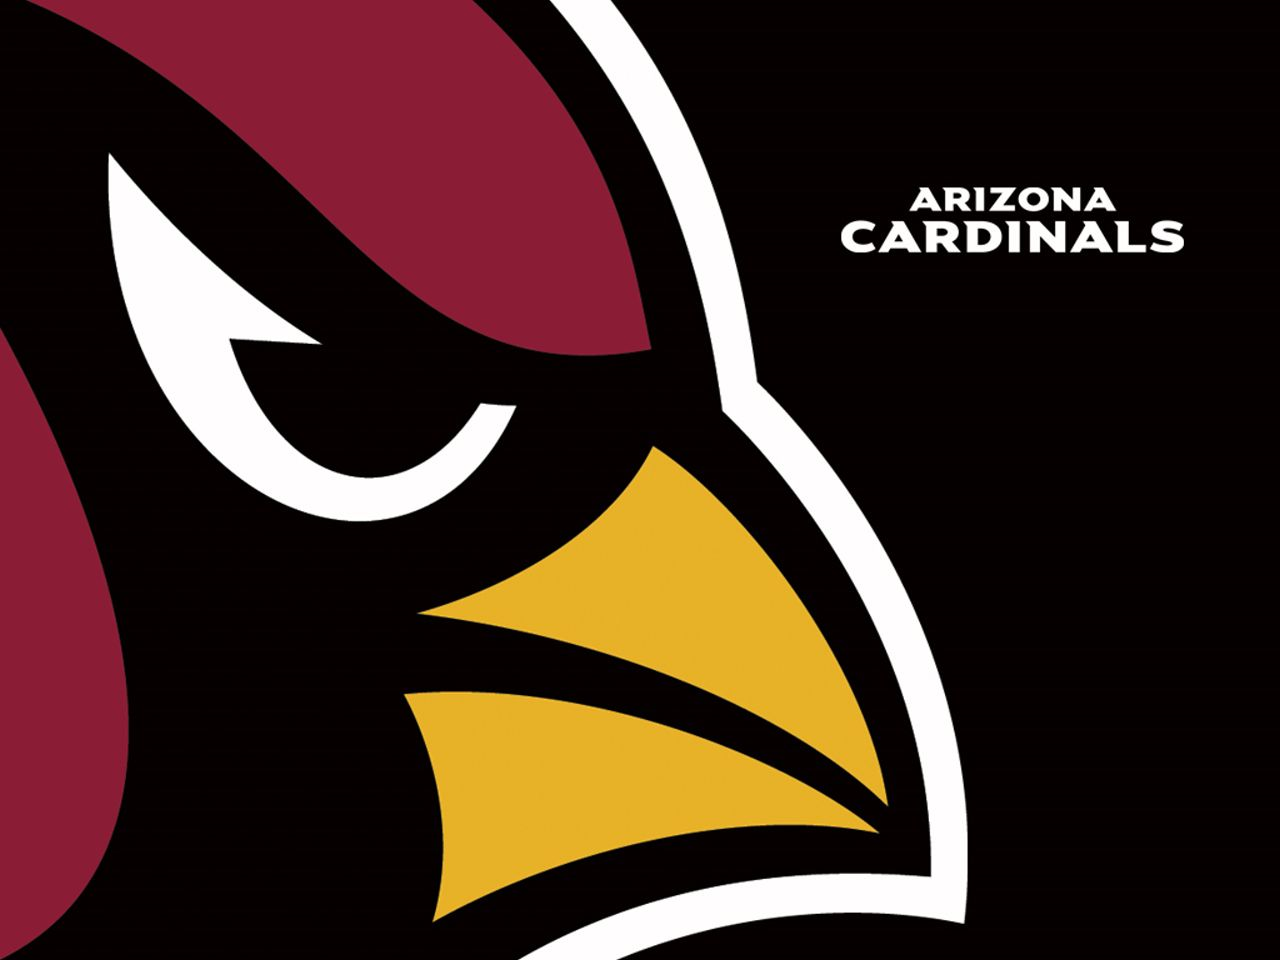 Pin By Noah Barlow On Cardinals Arizona Cardinals Wallpaper Arizona Cardinals Cardinals Wallpaper